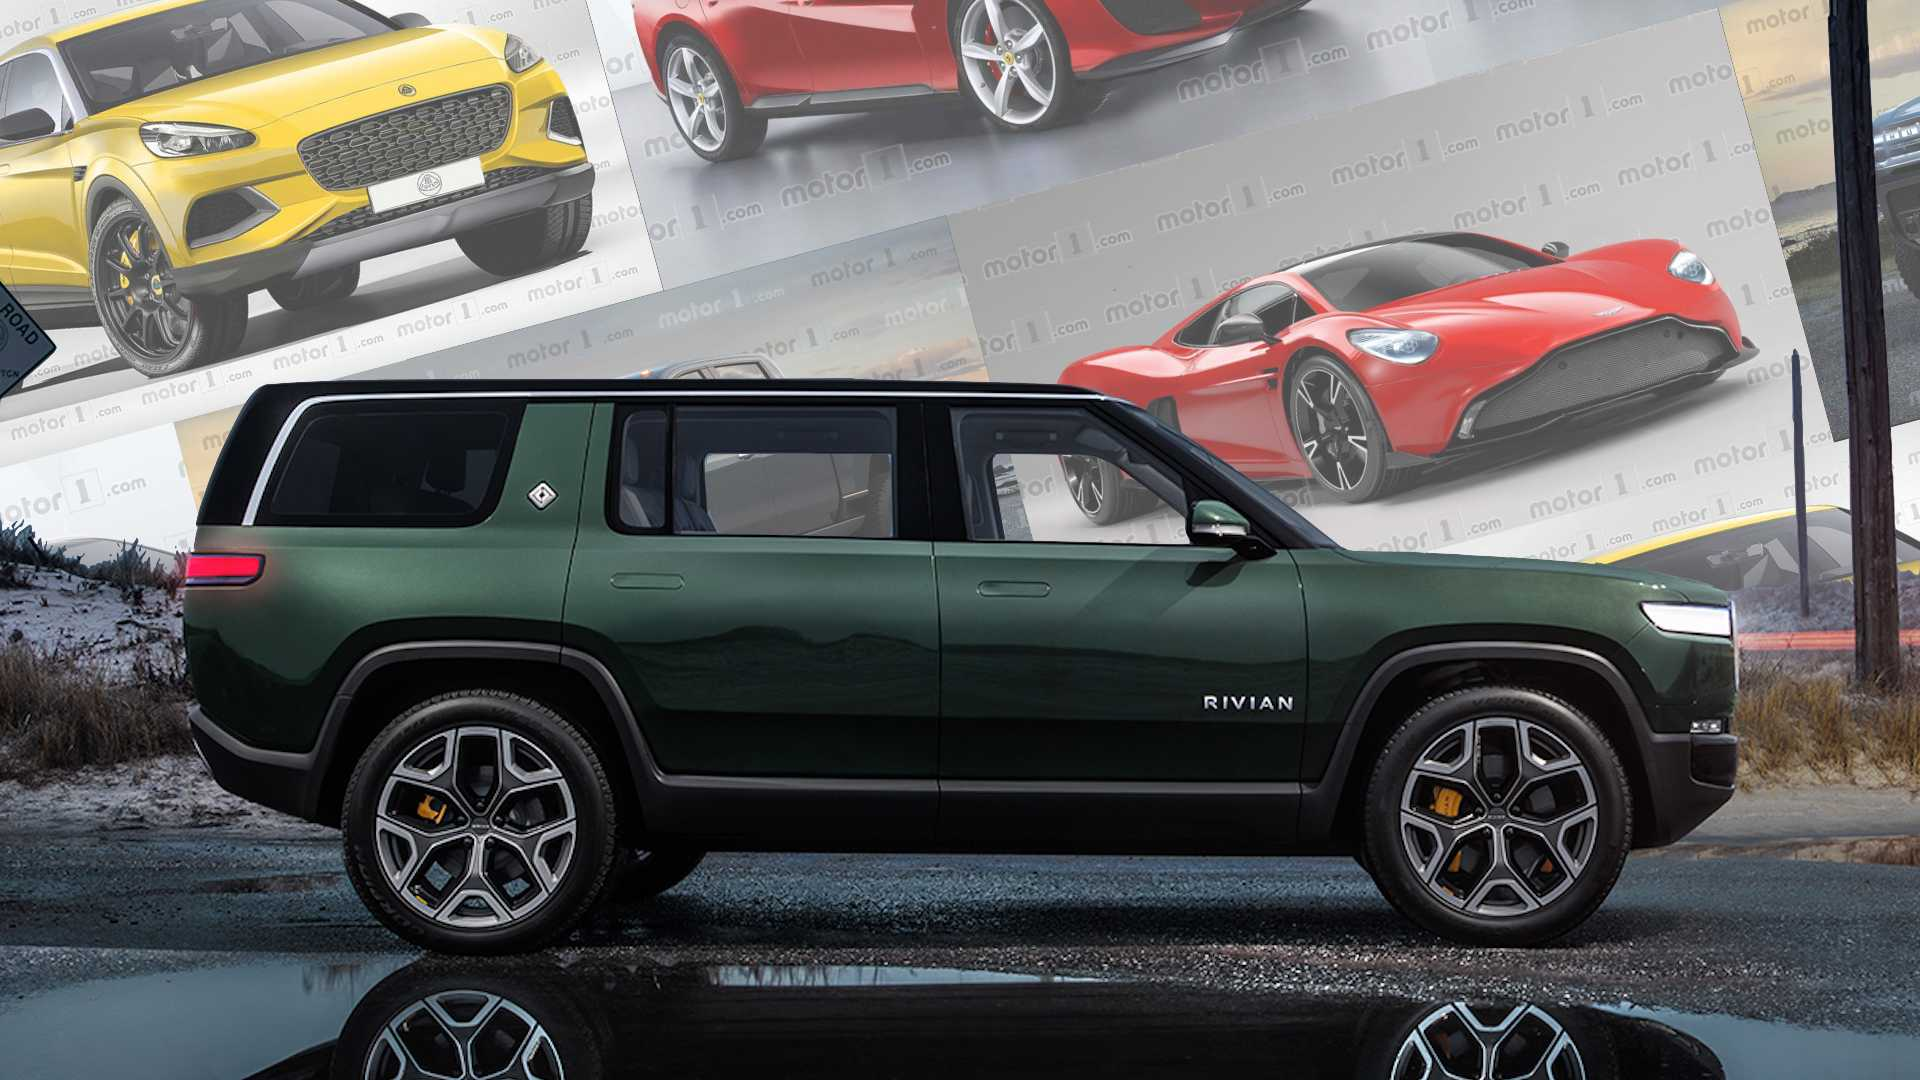 2022 New Models Guide 15 Cars Trucks And Suvs Coming Soon